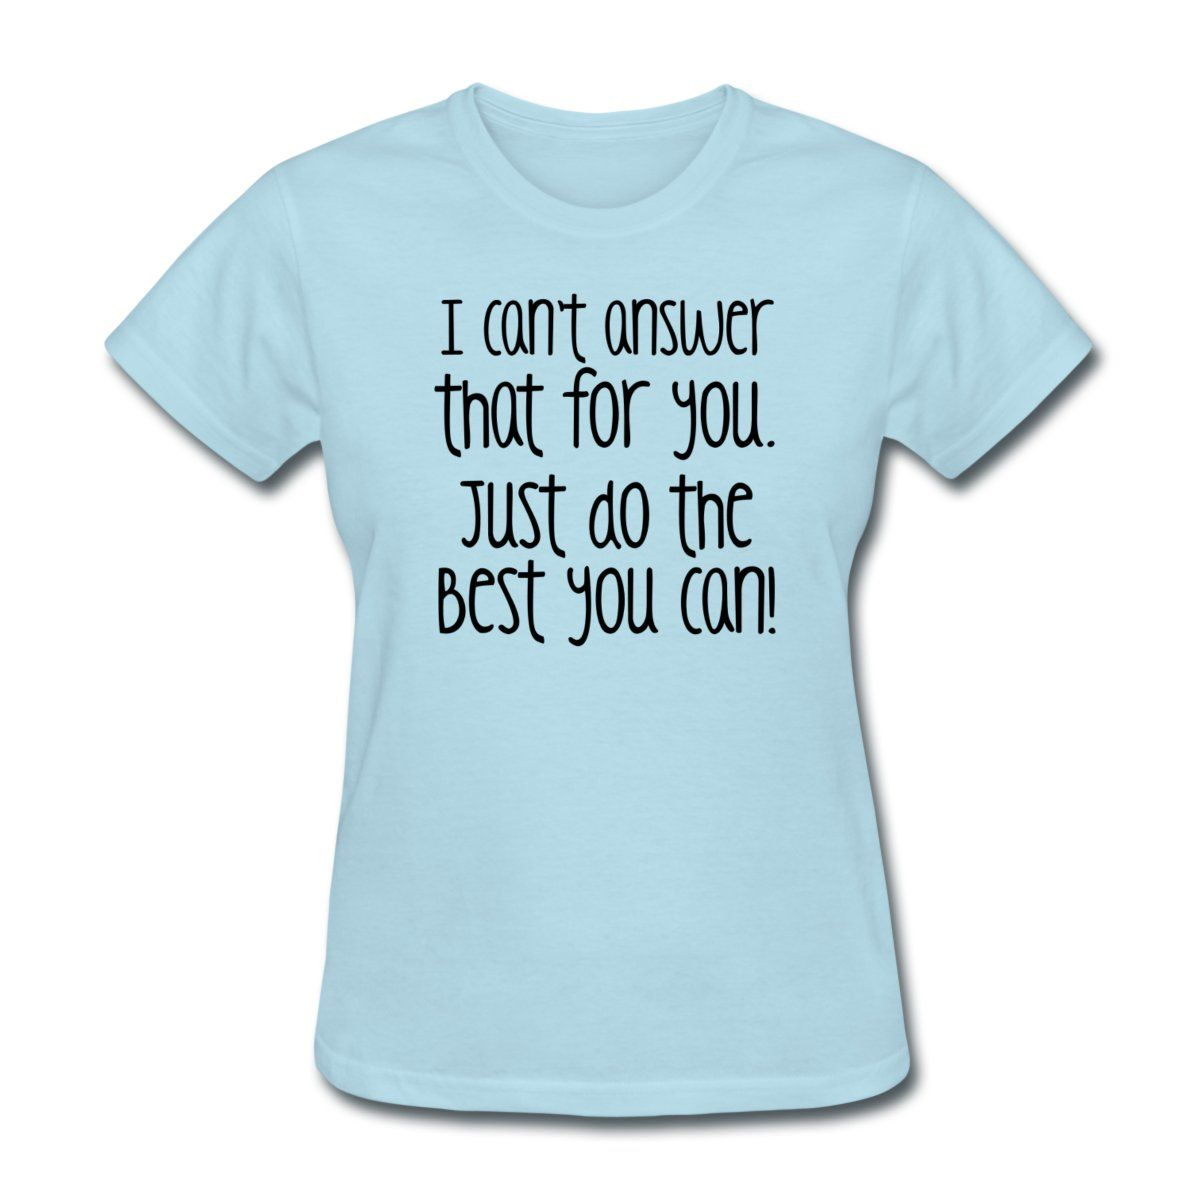 I can't answer that for you. Just do the best you can! - Women's T-Shirt